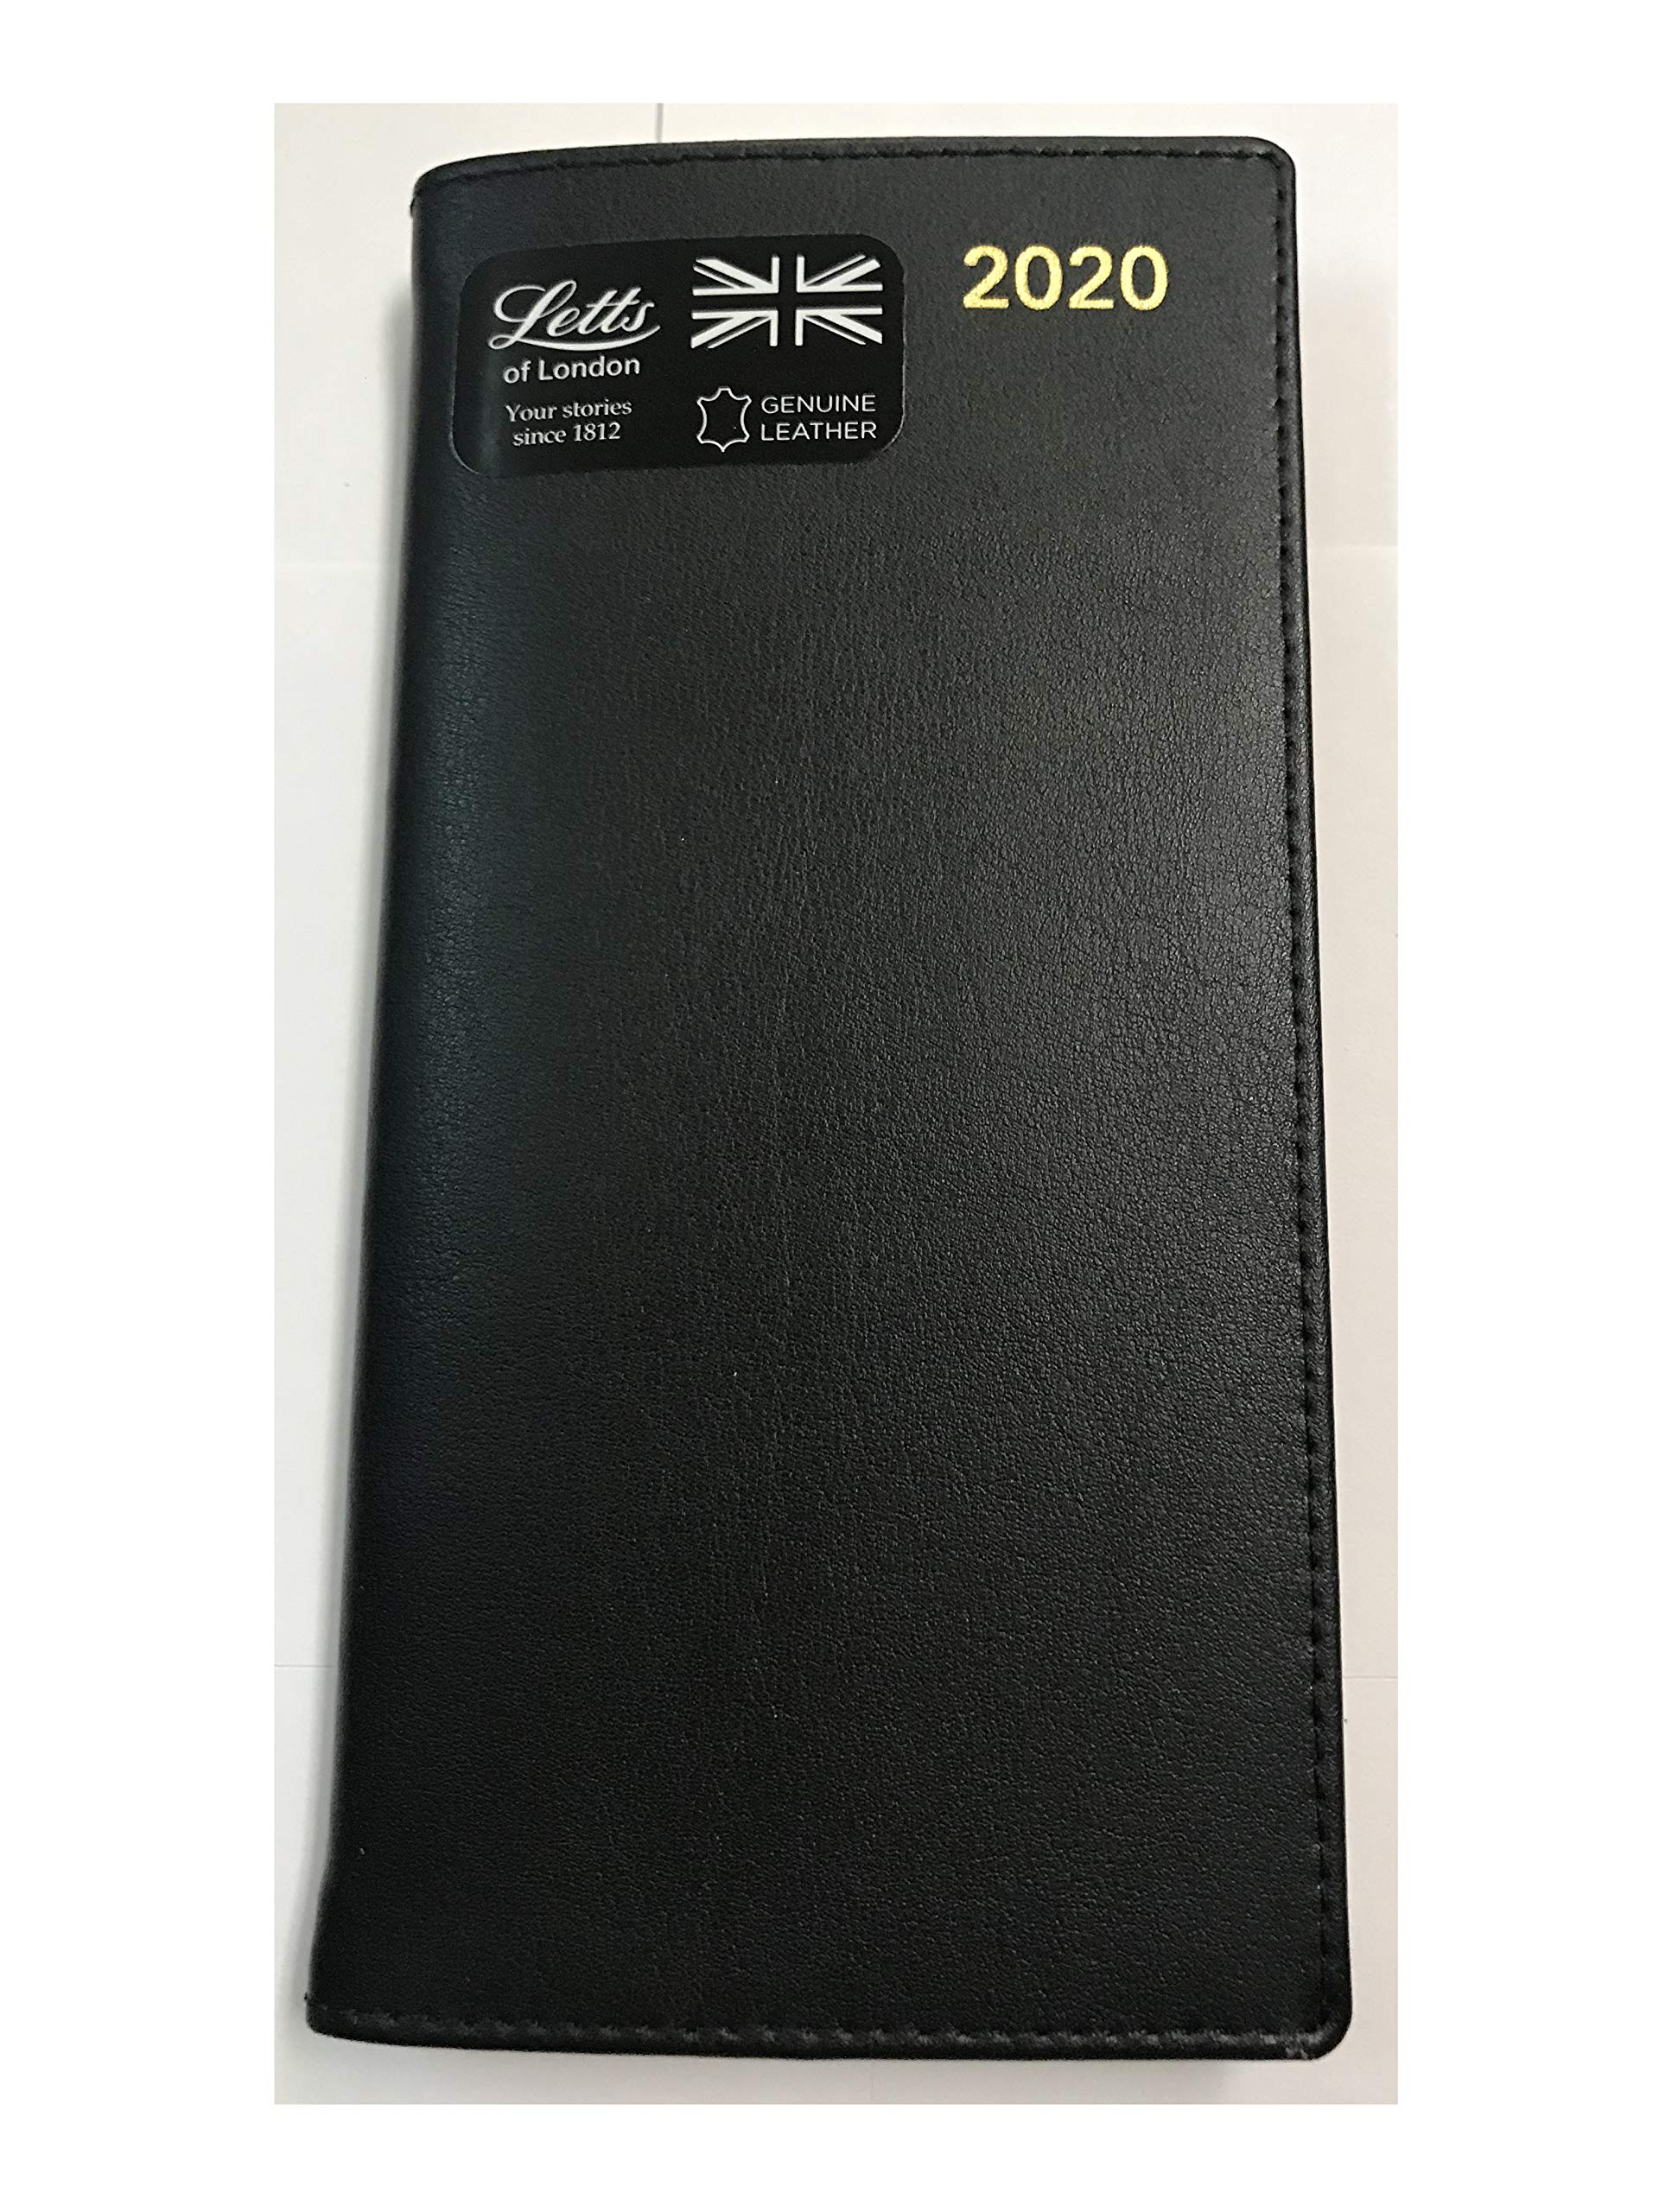 Letts of London 2020 Belgravia Rling Slim 33S Horizontal Week to View Diary (S Size) Calendar (Black) by Letts of London